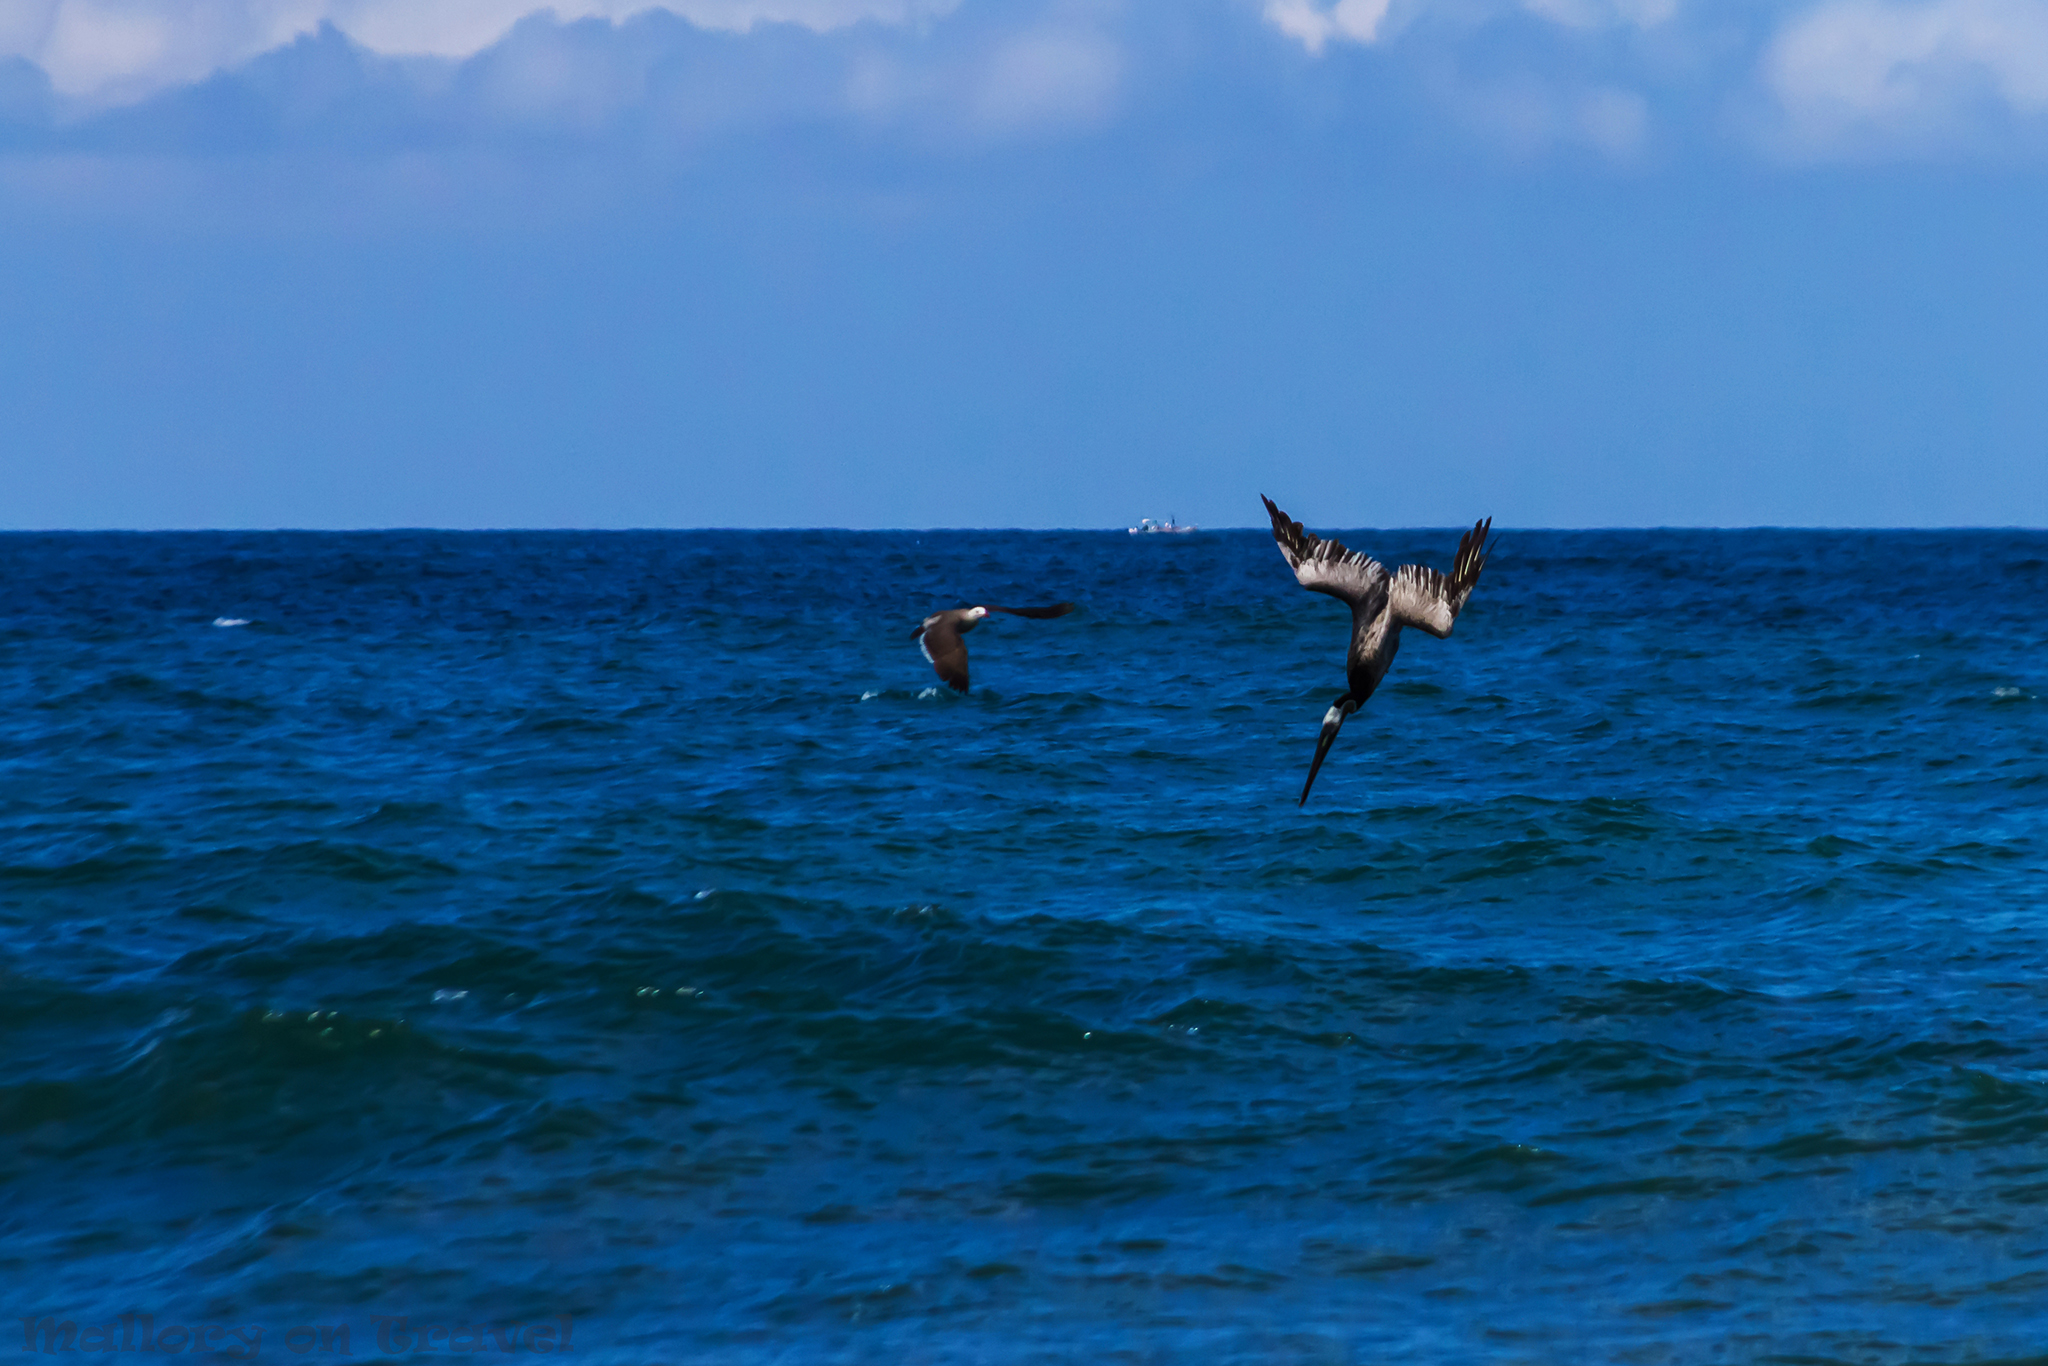 brown pelicans dive bombers of the sea photo essay mallory on brown pelican diving and fishing off the beach of san pancho riviera nayarit puerto